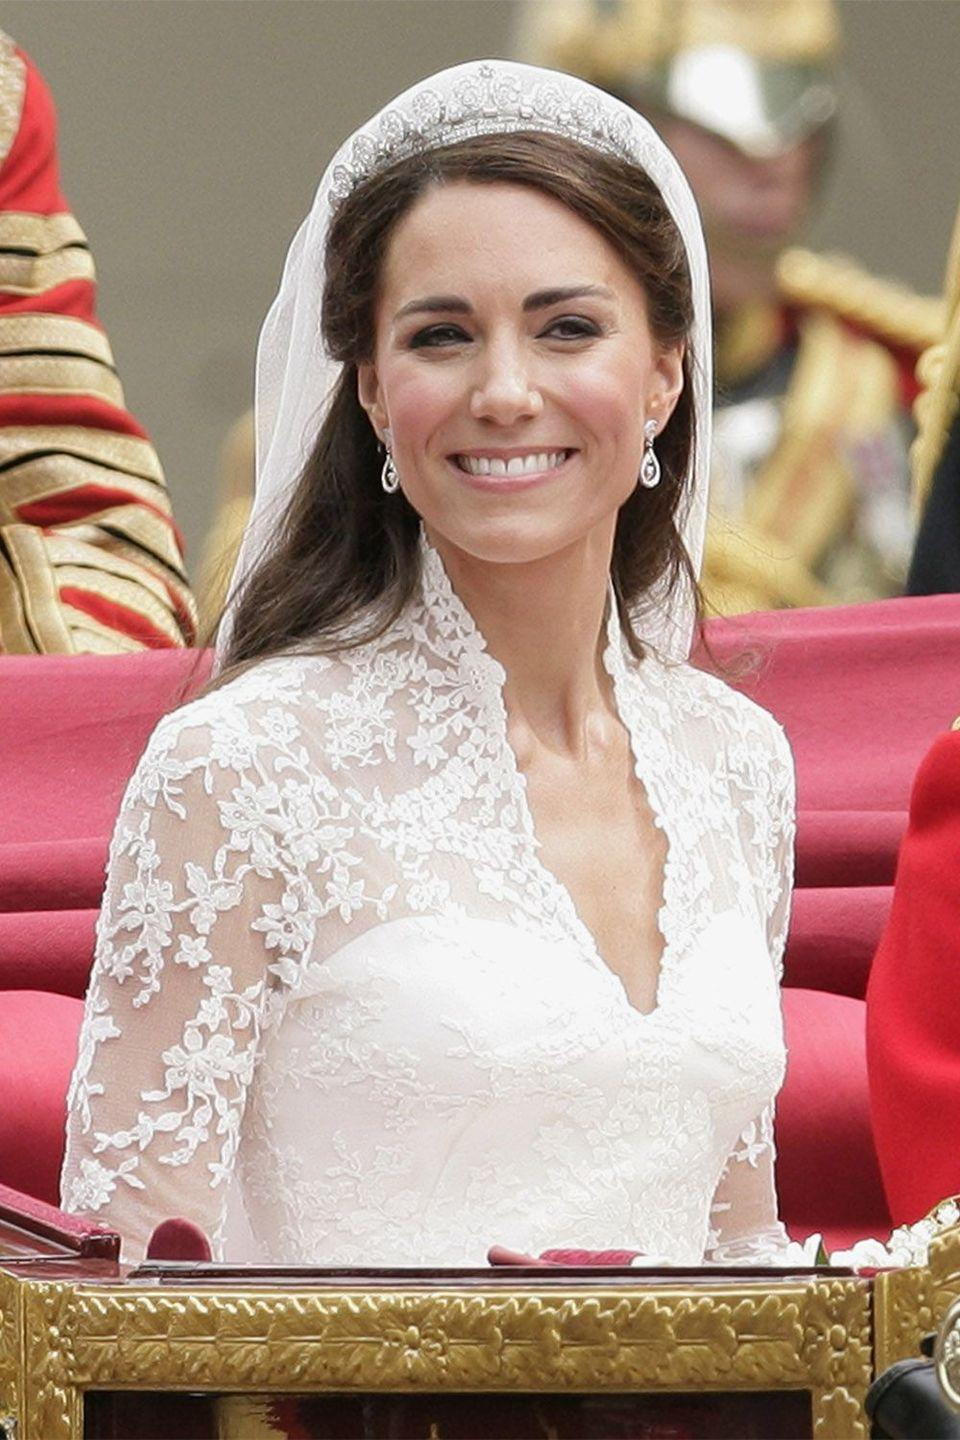 <p>The Duchess of Cambridge chose a half-up style for her wedding hair</p>